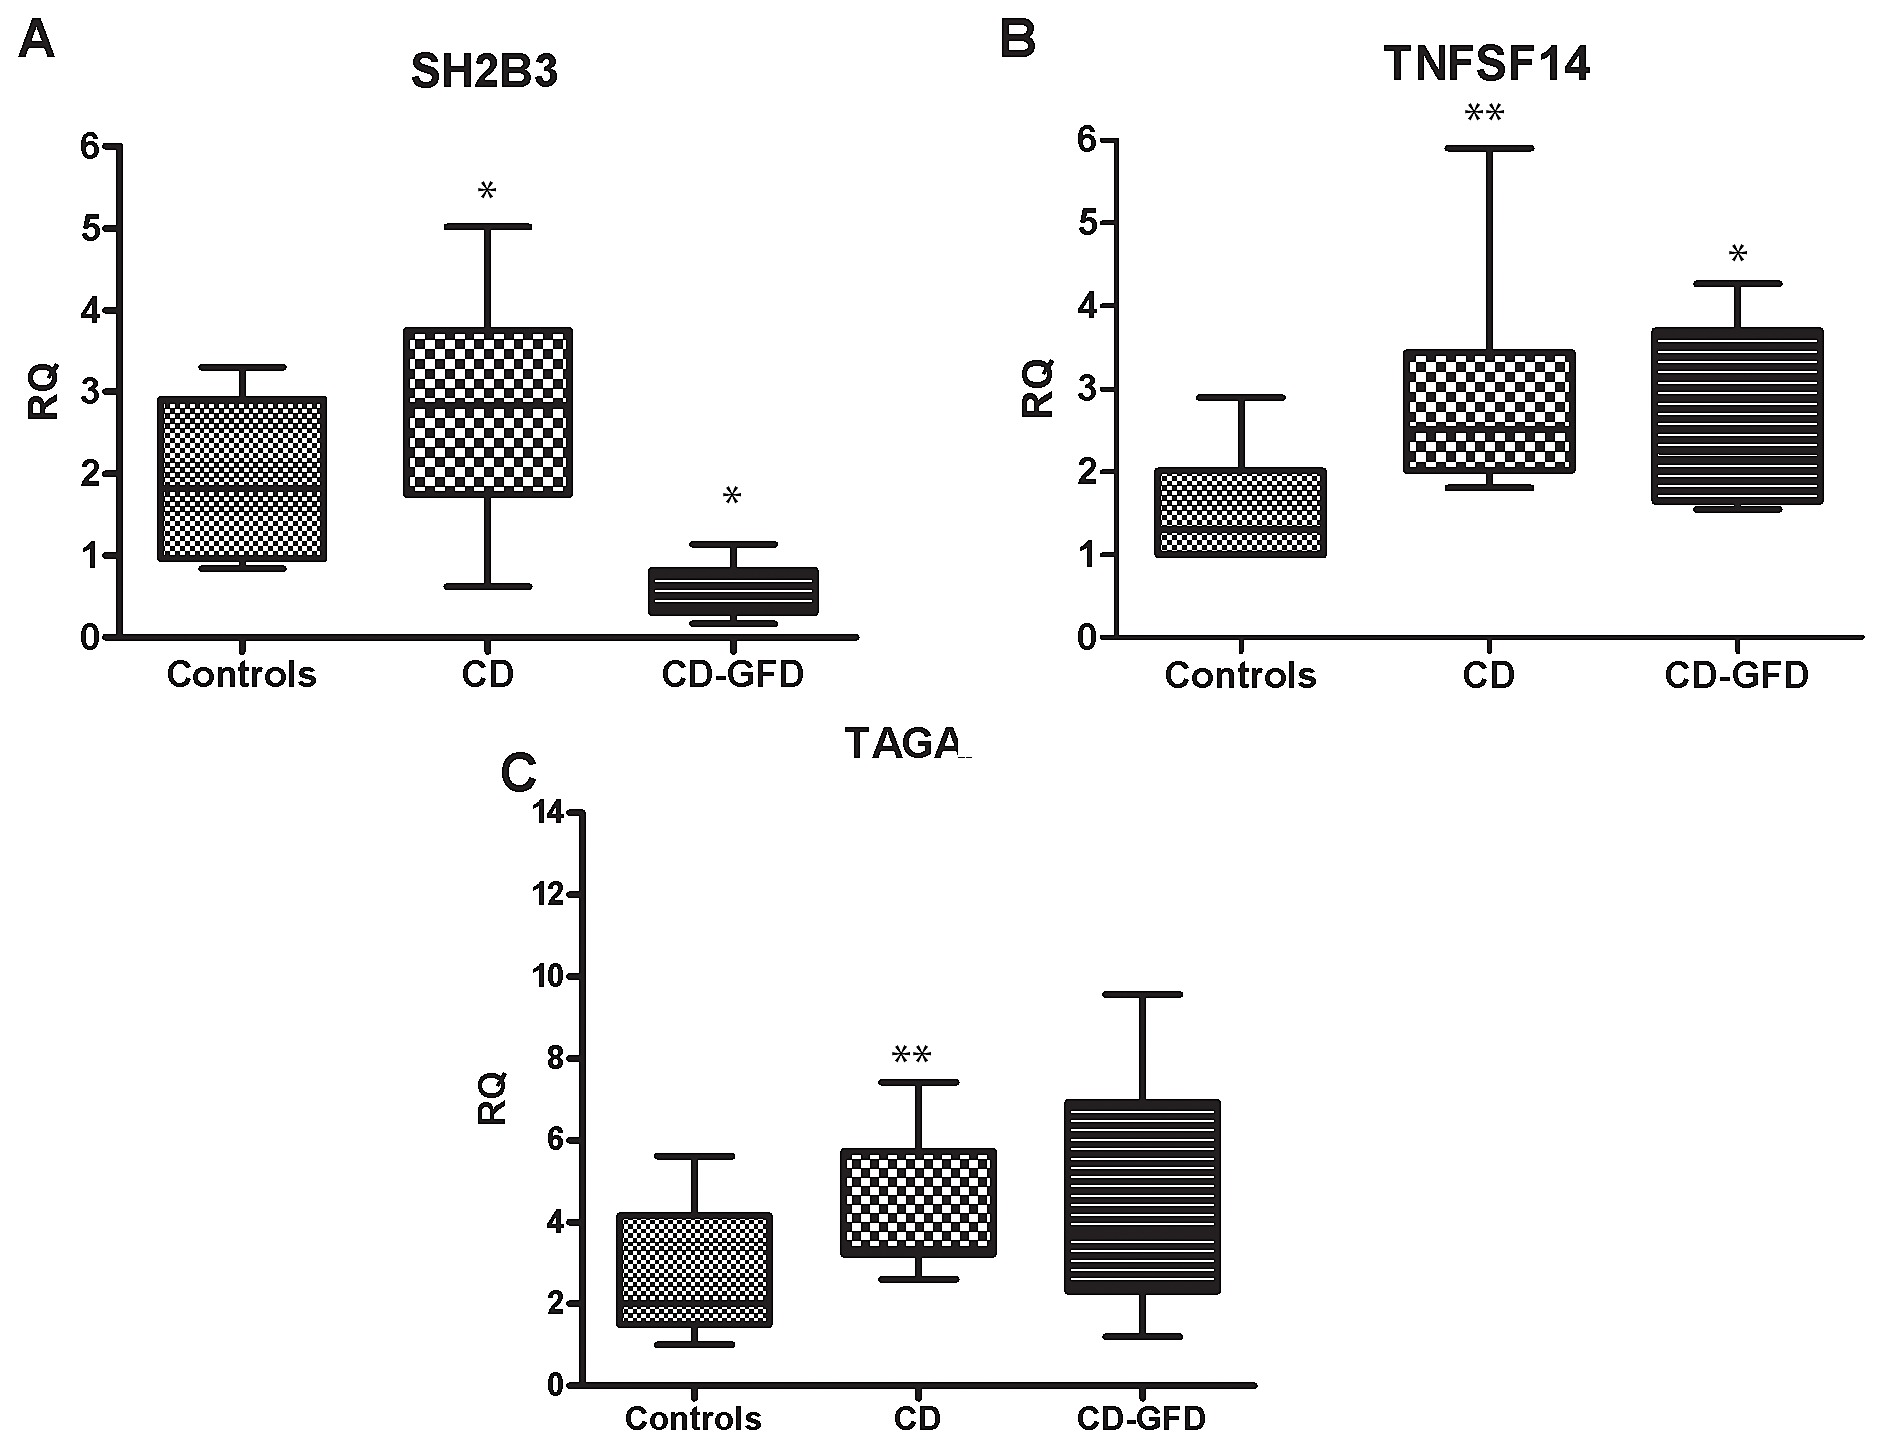 Gene Expression Profile of Peripheral Blood Monocytes: A